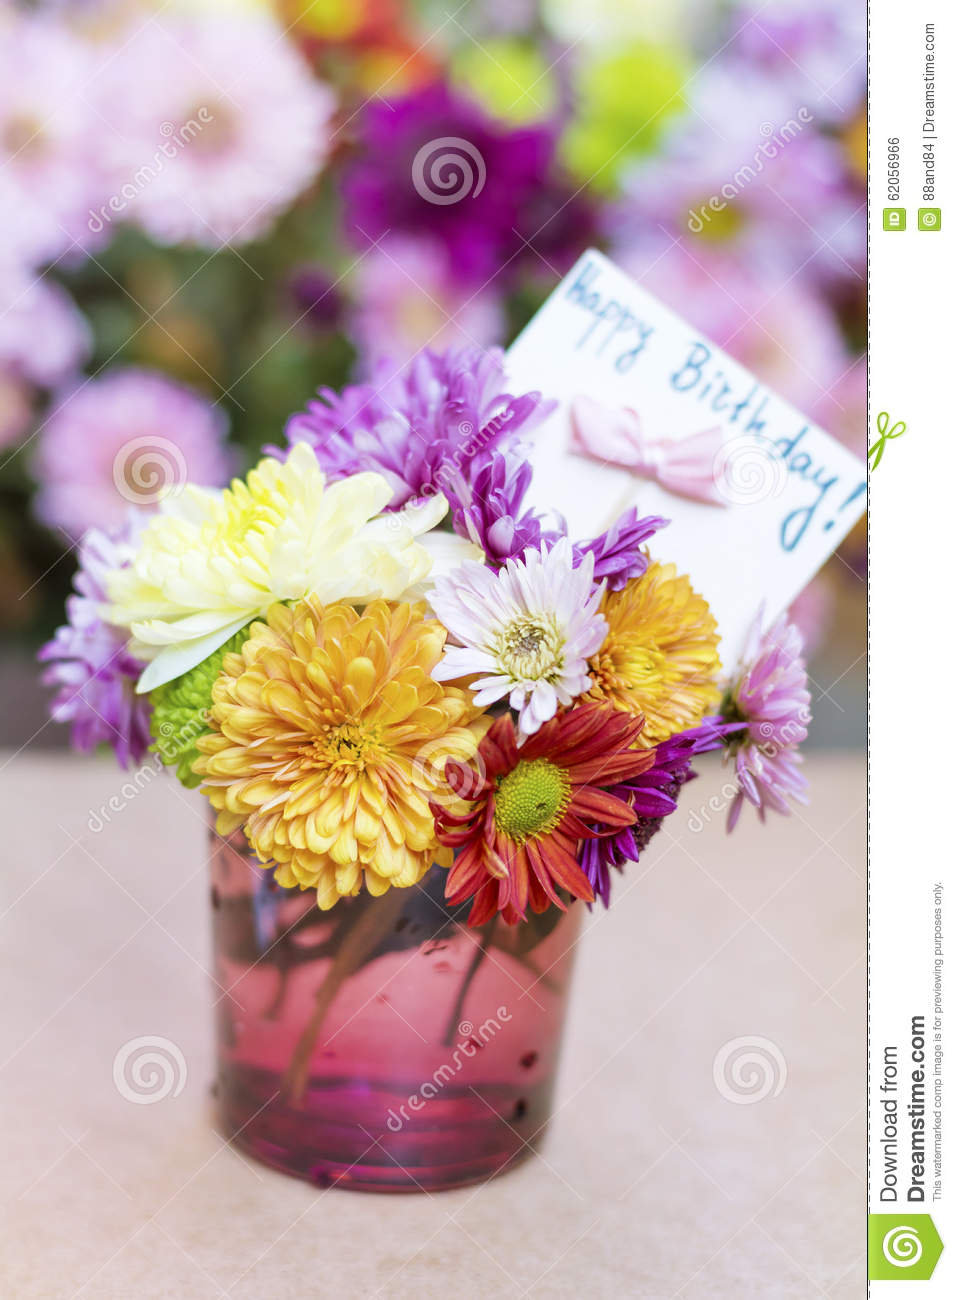 Chrysanthemums Flowers In Purple Glass Vase With Happy Birthday Card